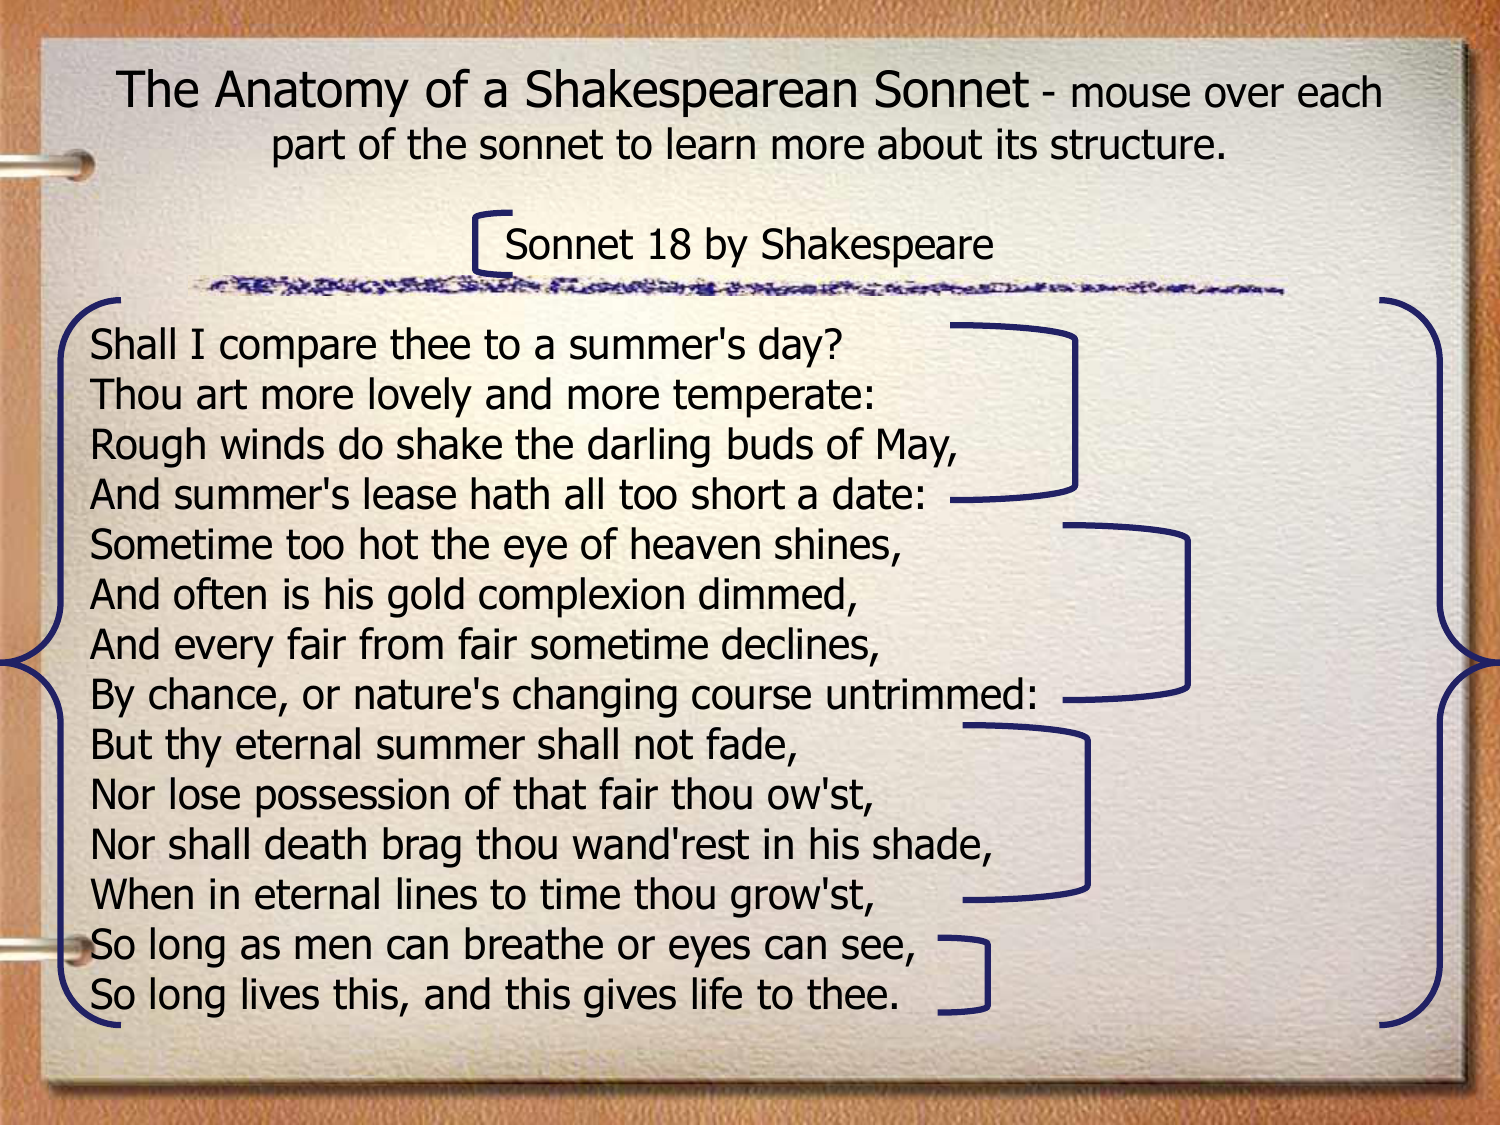 analysis of shakepeares sonnets Shakespeare - sonnet 116 analysis and interpretation sonnet 116 was written by william shakespeare and published in 1609 william shakespeare was an english writer and poet, and has written a lot of famous plays, amongst them macbeth and romeo and juliet.